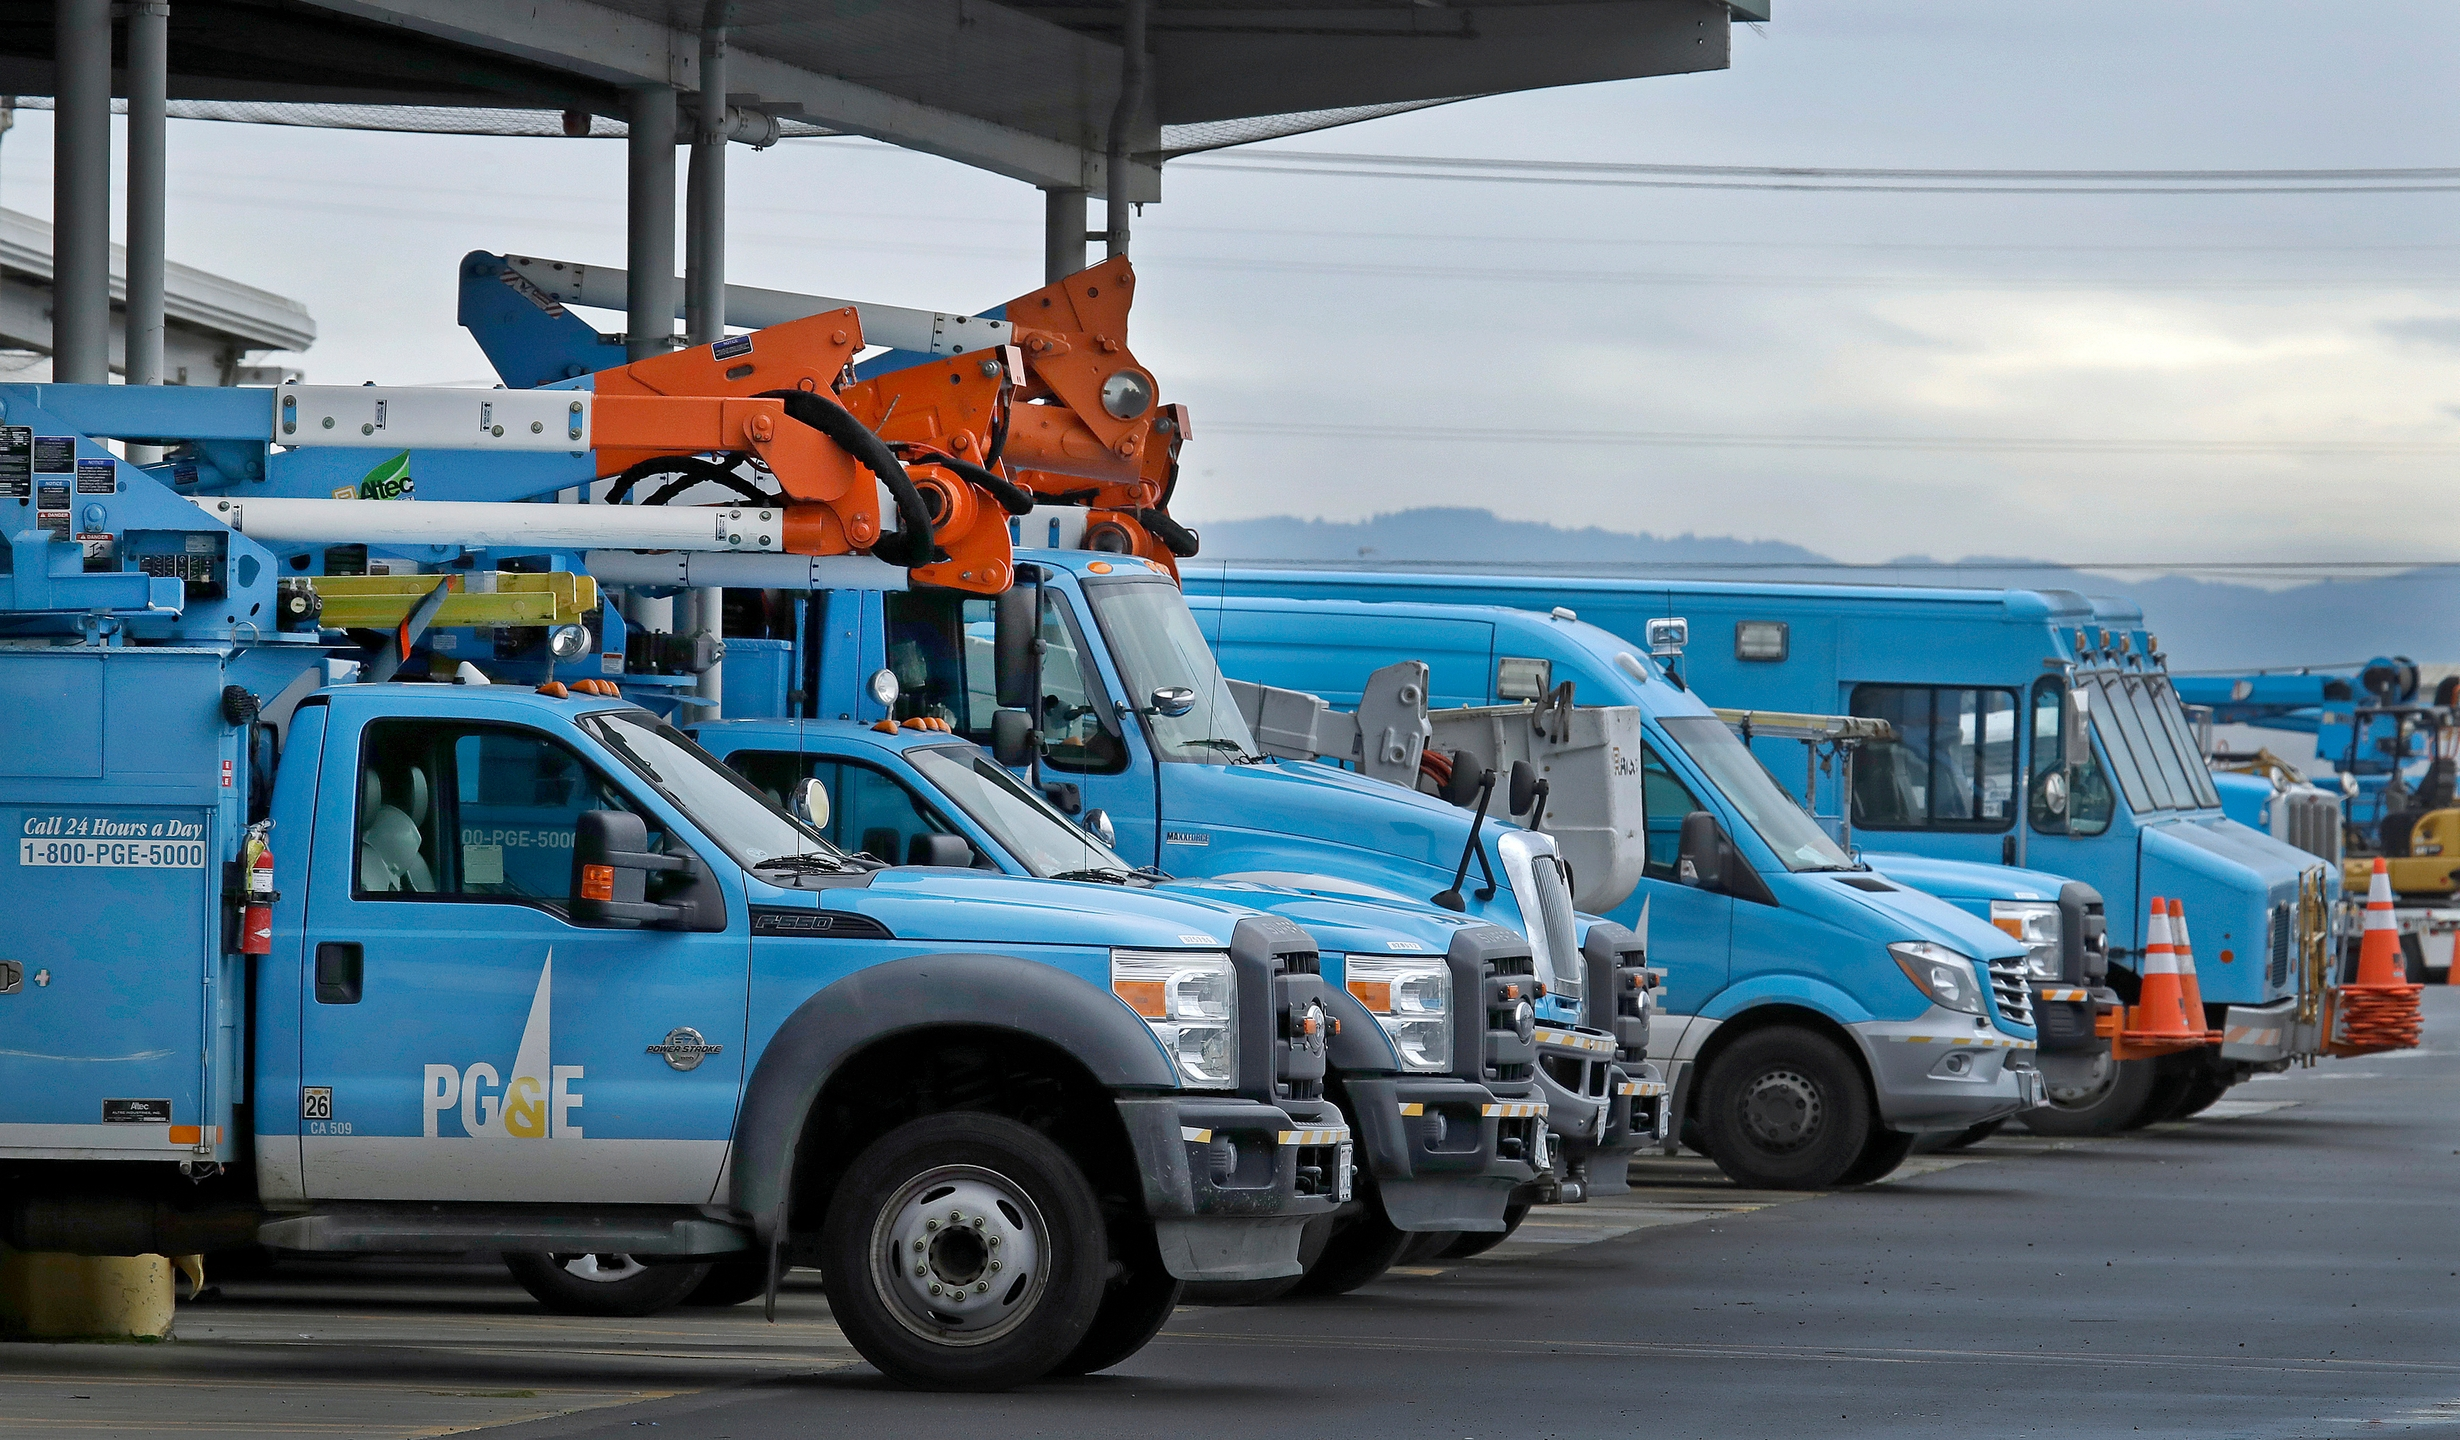 PG & E Work Vehicles